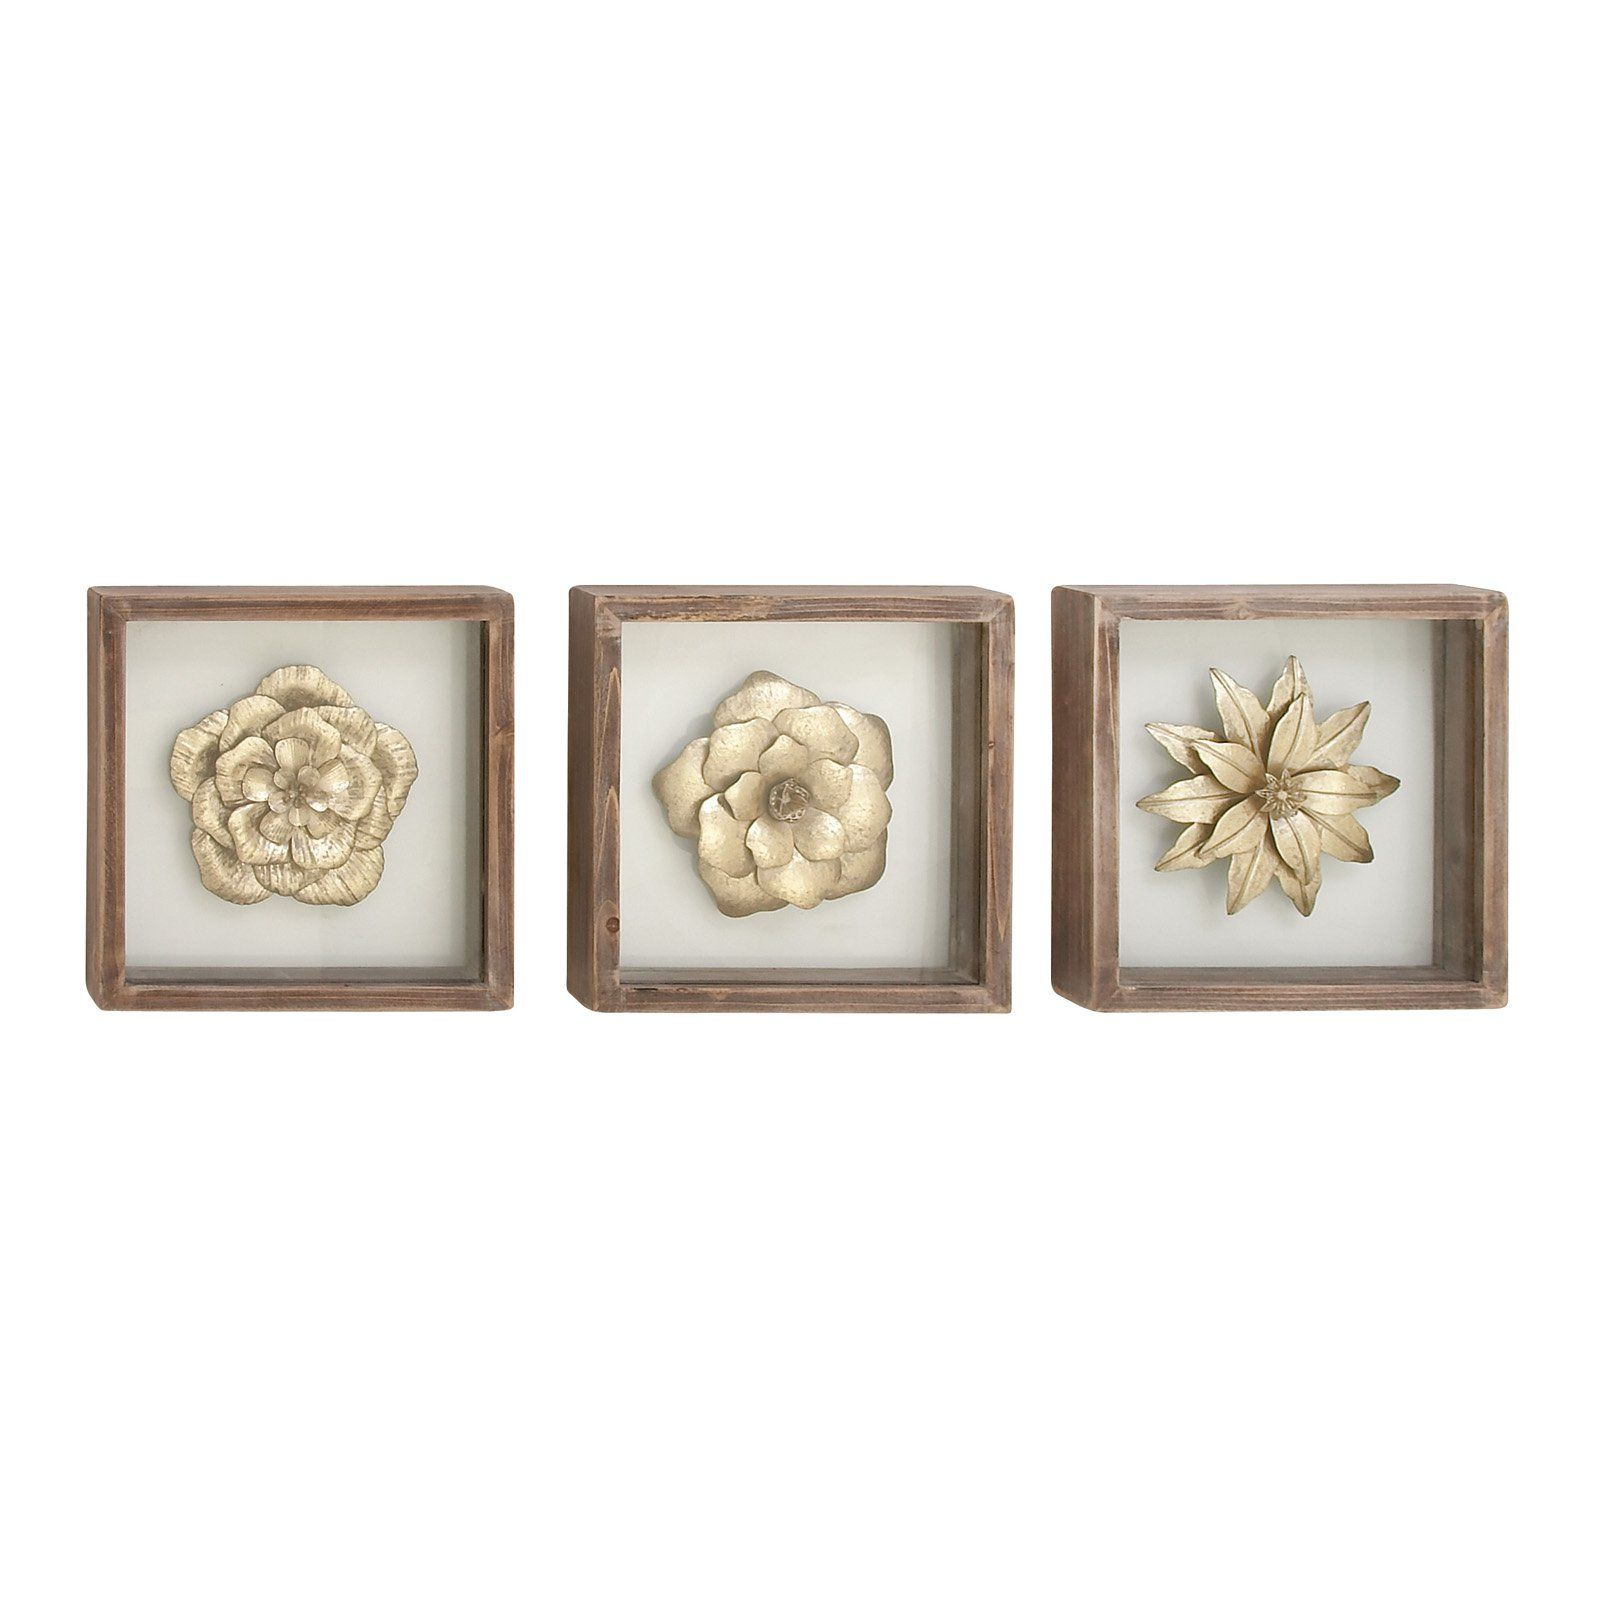 Decmode 10 In Square Framed Metal And Wood Floral Wall Art Set Of 3 Framed Wall Art Sets Metal Flower Wall Art Wood Wall Plaques